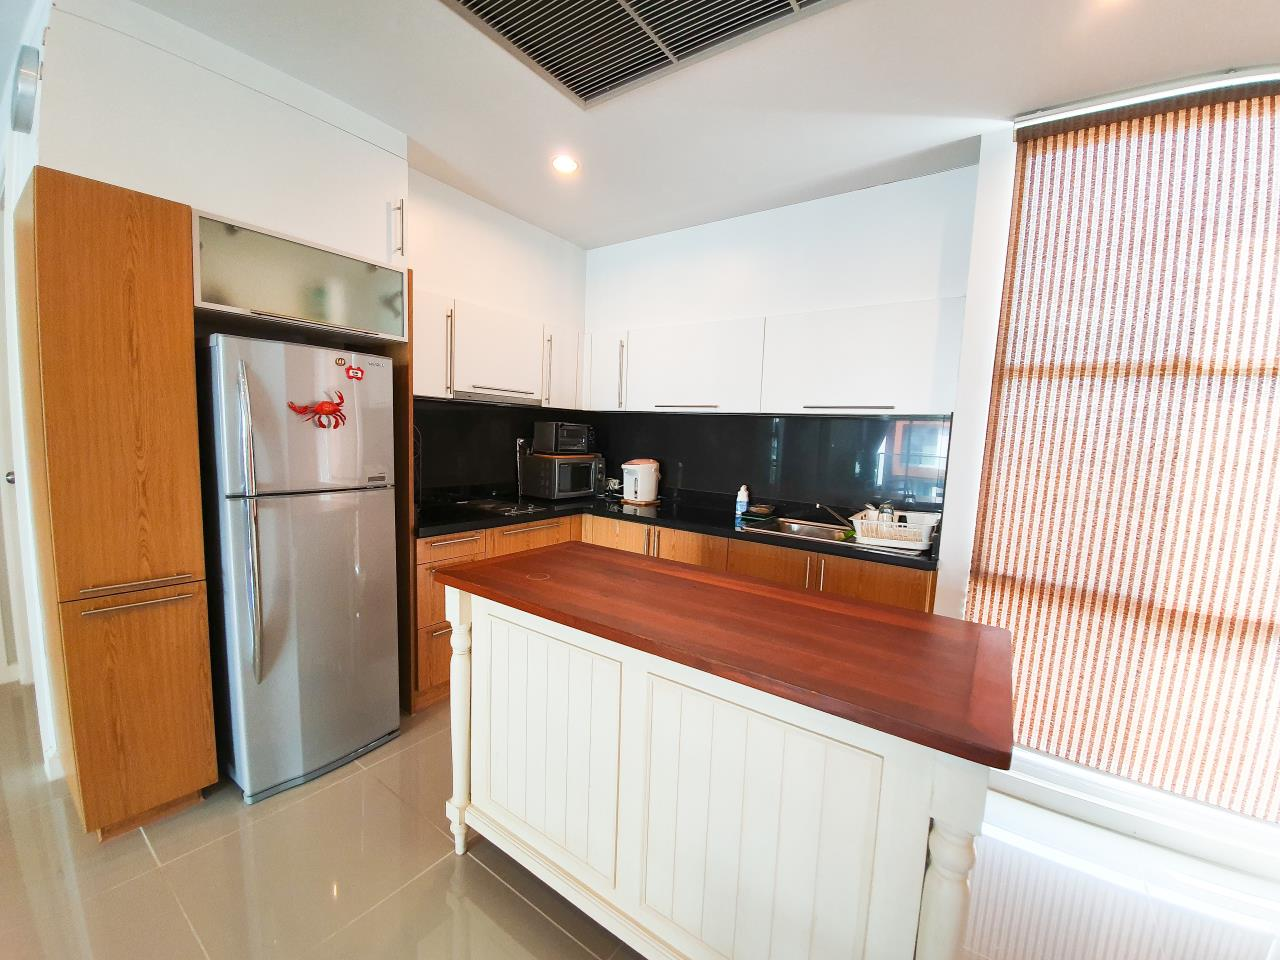 HOME - Real Estate Service Agency's The Breeze Hua Hin / 2 Beds (FOR RENT), เดอะ บรีซ หัวหิน / 2 ห้องนอน (ให้เช่า) T008 5